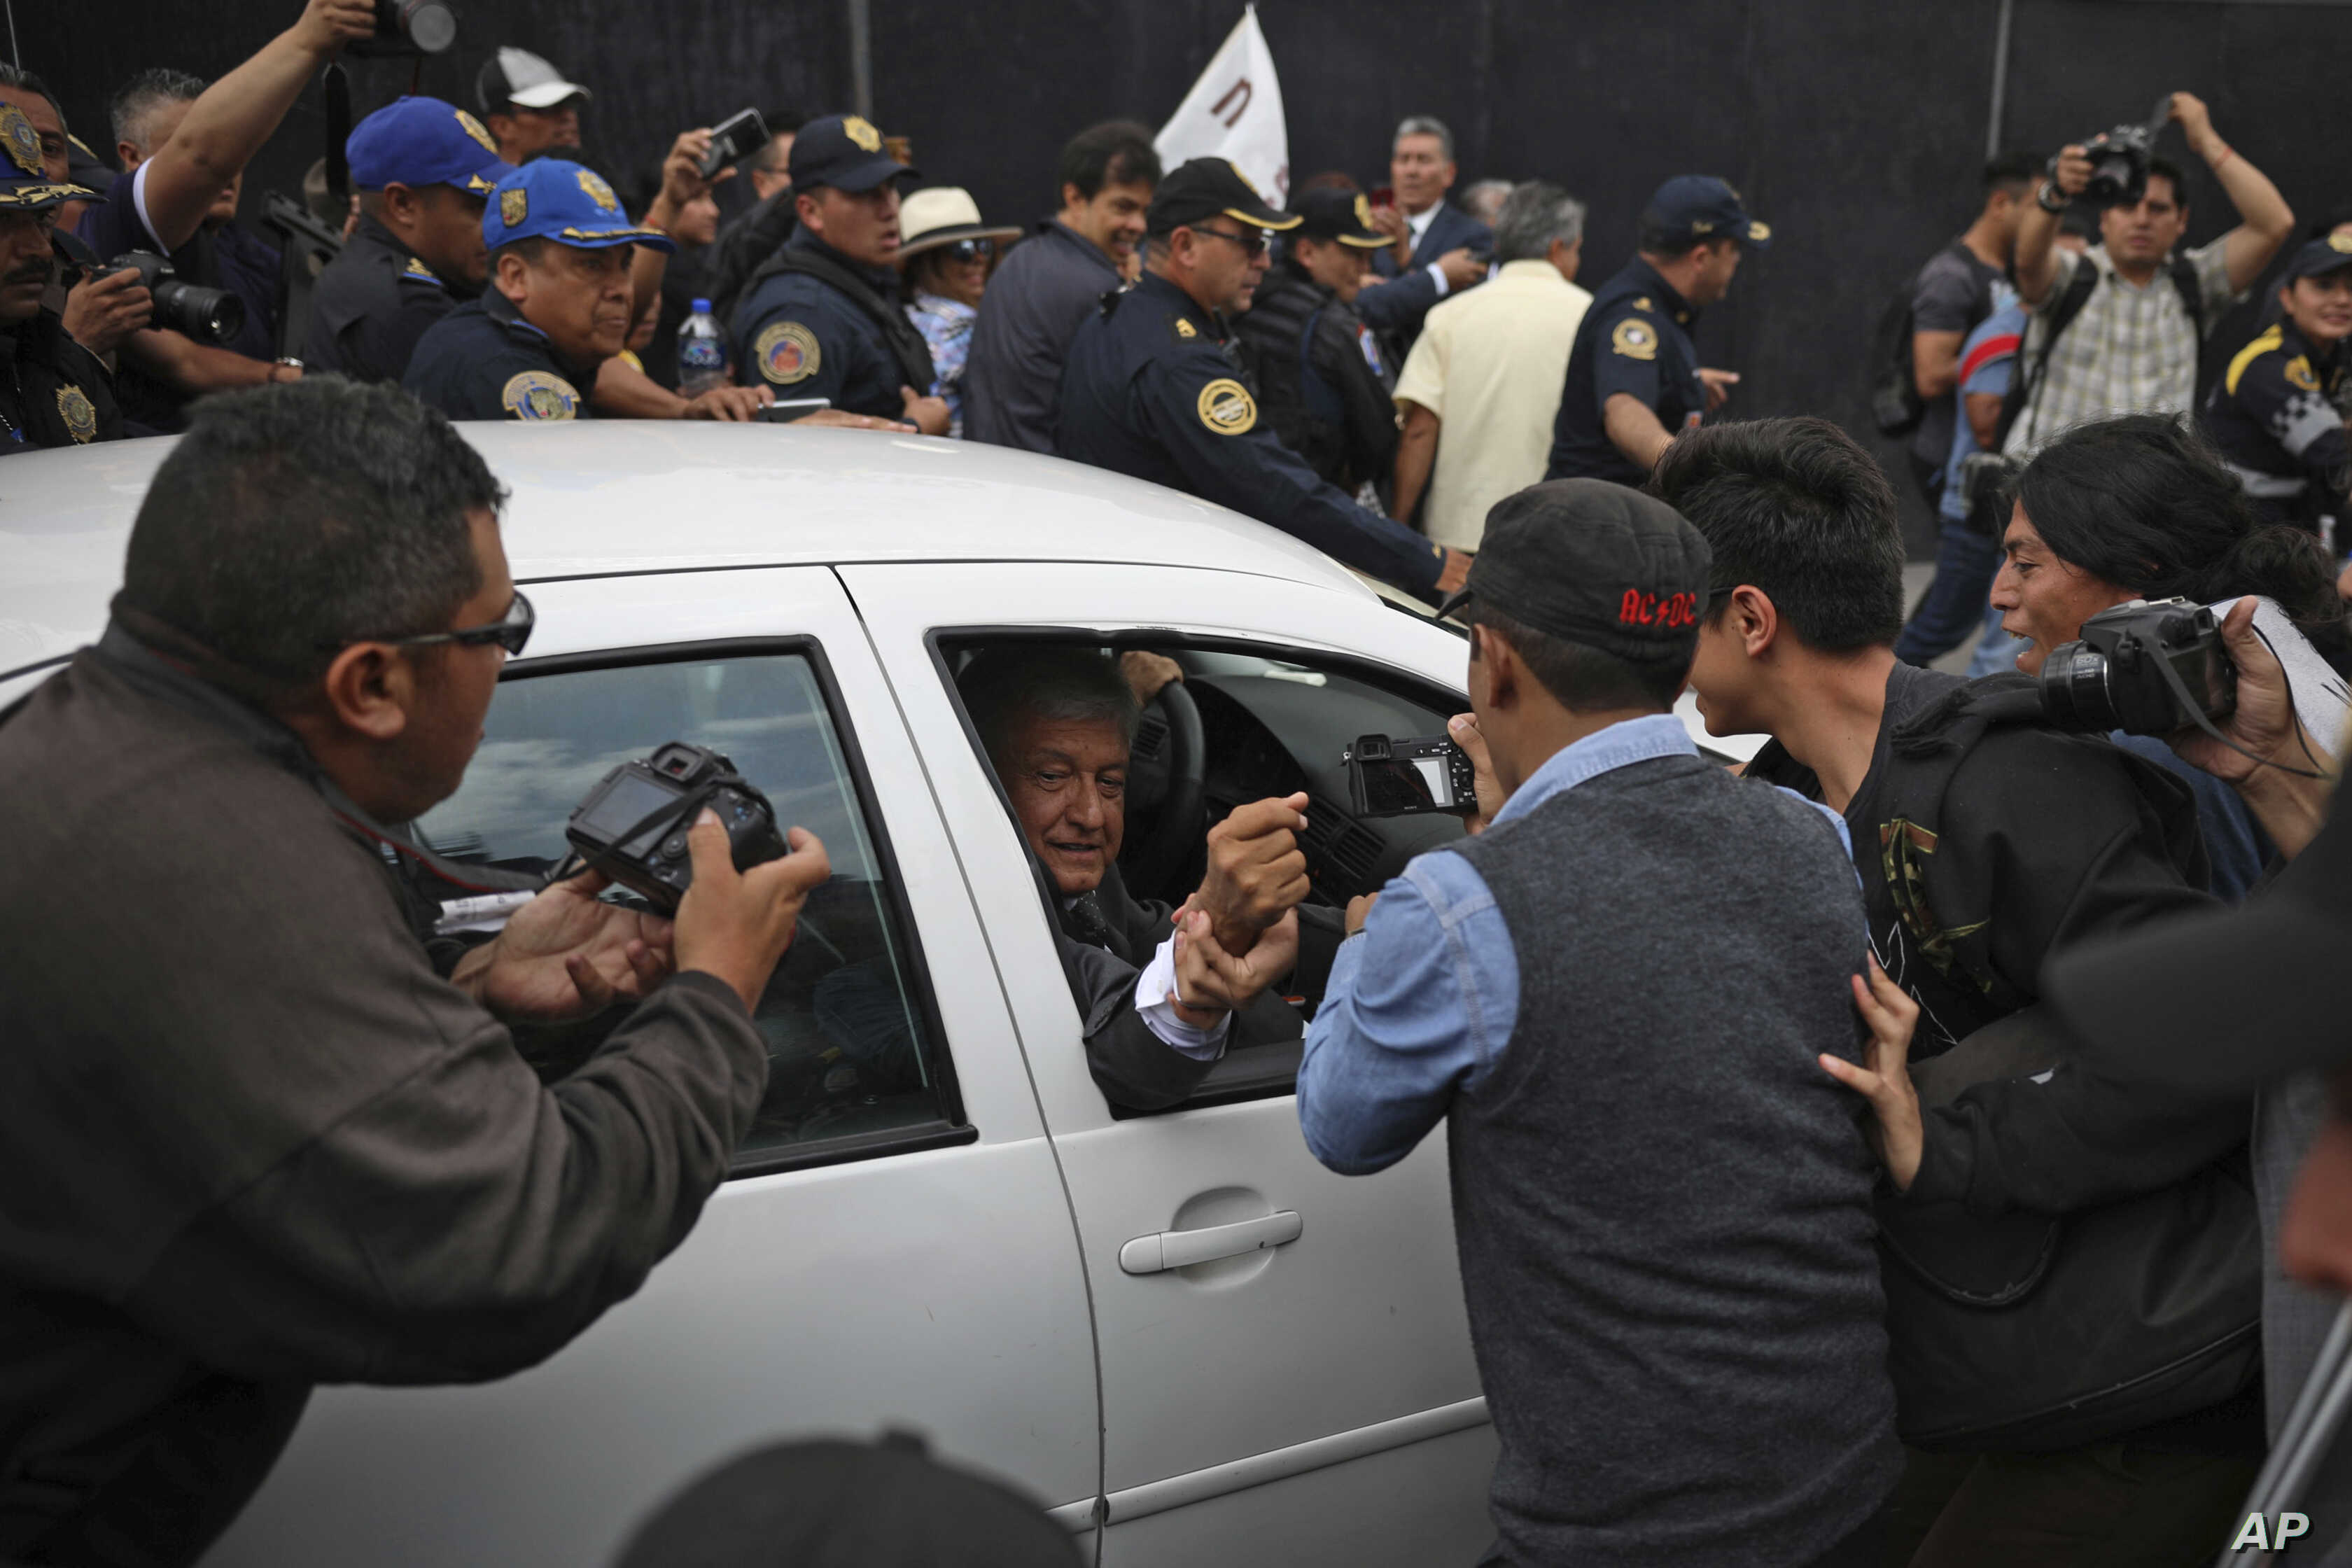 Mexico's President-elect Andres Manuel Lopez Obrador greets a supporter as he leaves the National Palace where he met with Mexico's President Enrique Pena Nieto in Mexico City, July 3, 2018.